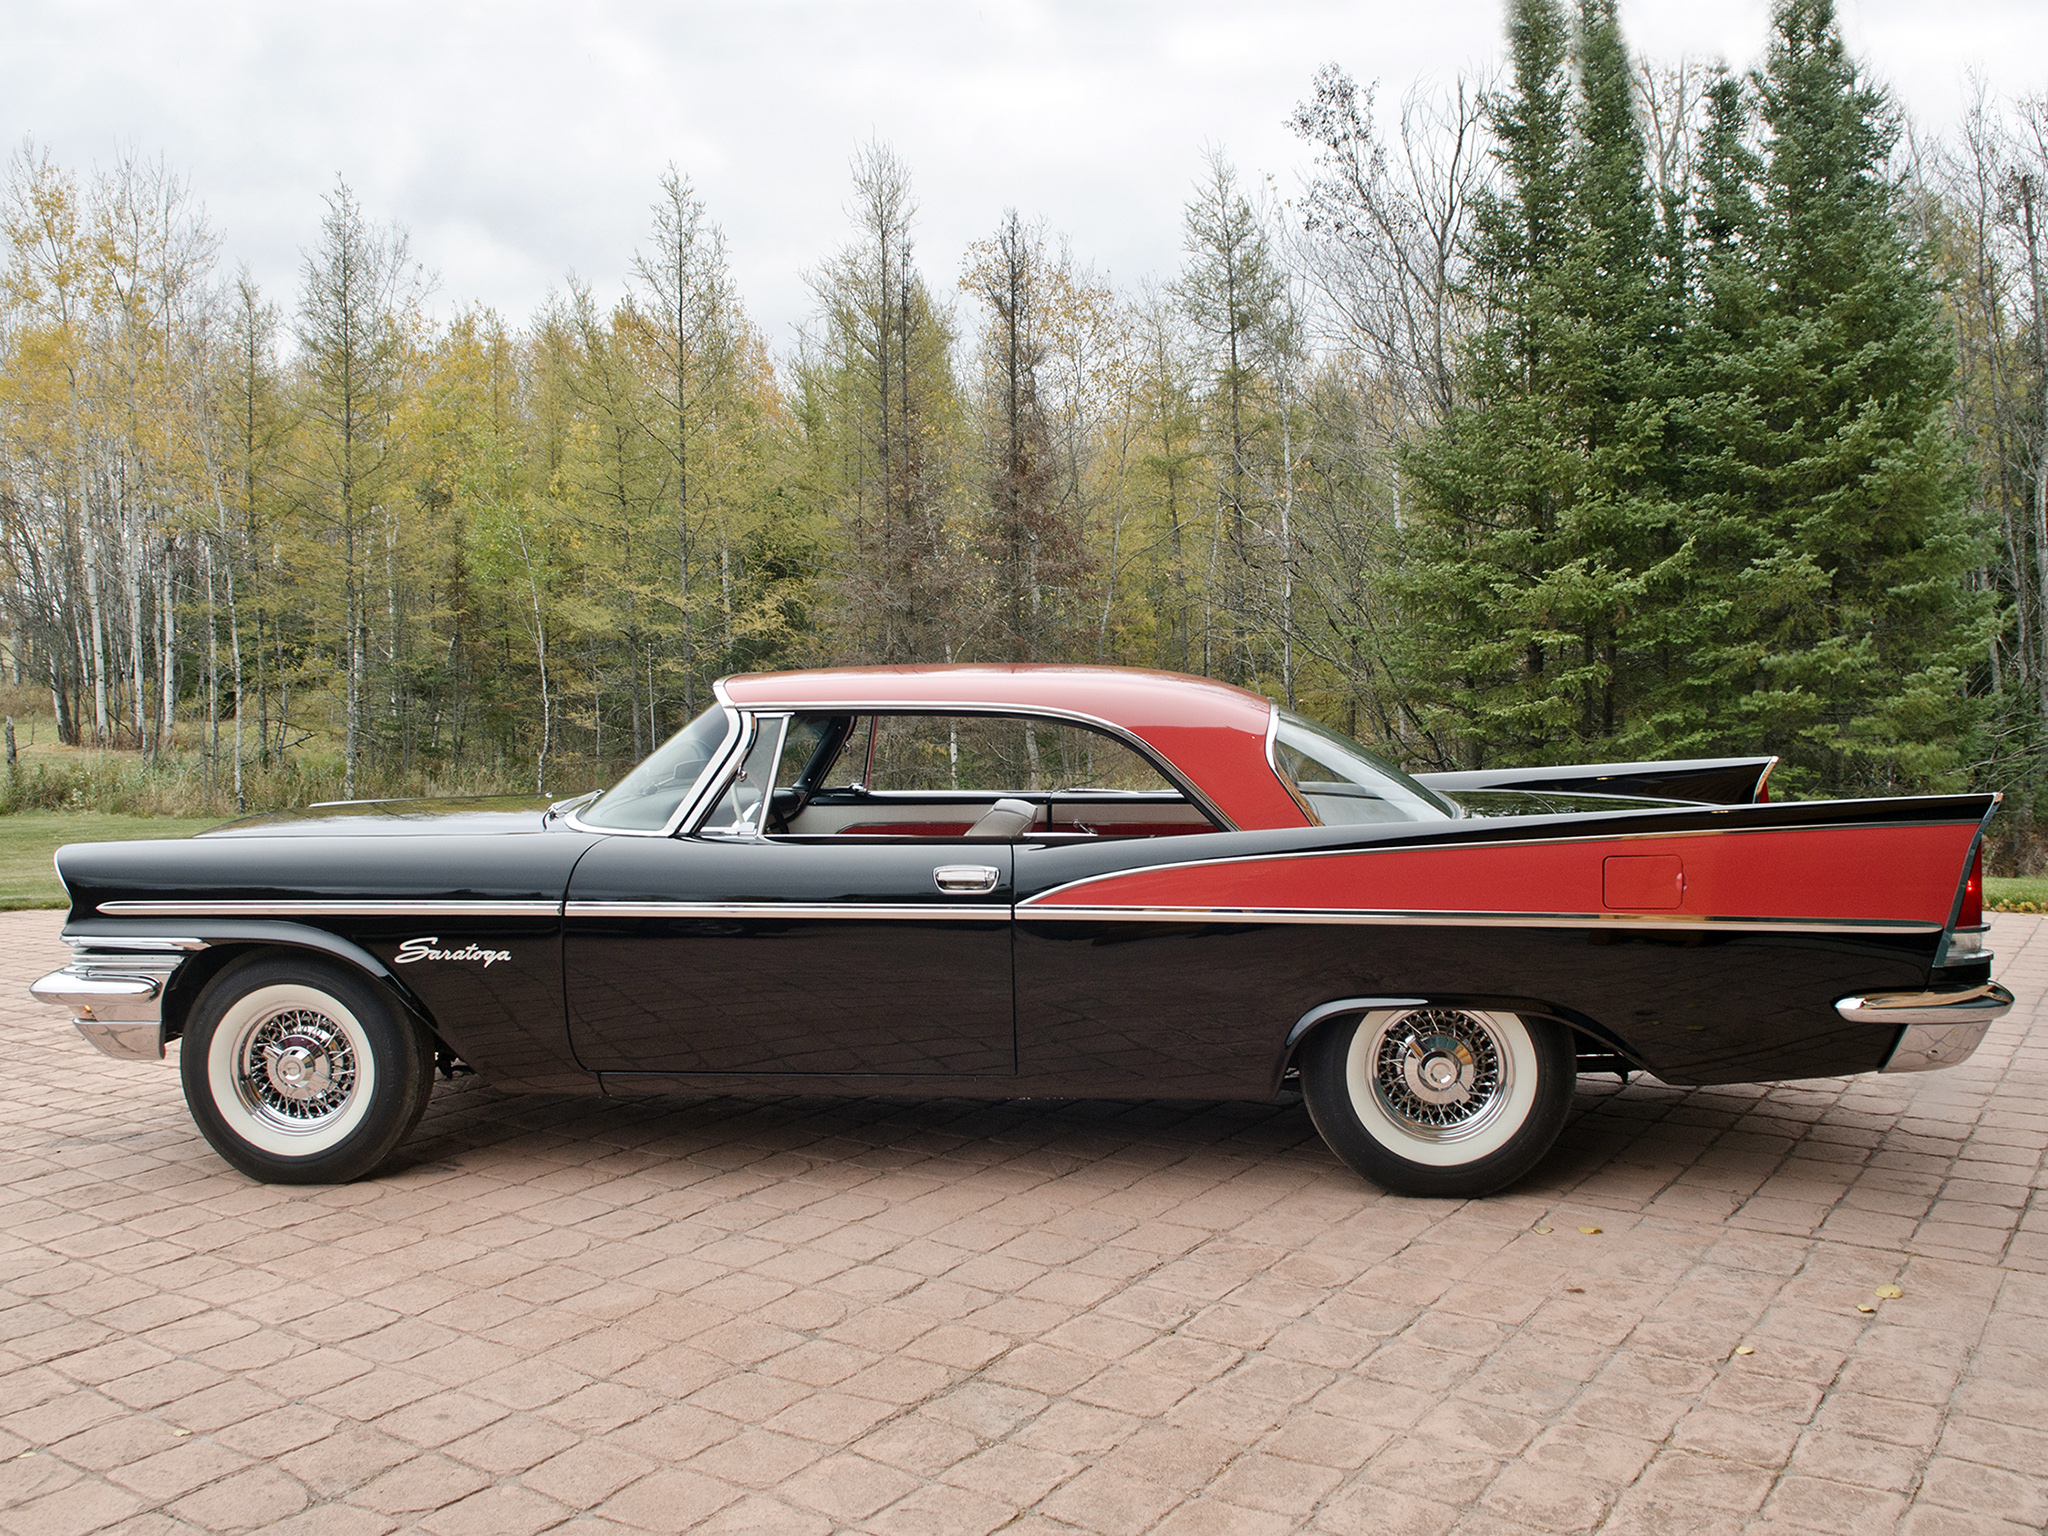 1957 Chrysler Saratoga Hardtop Coupe Retro Luxury